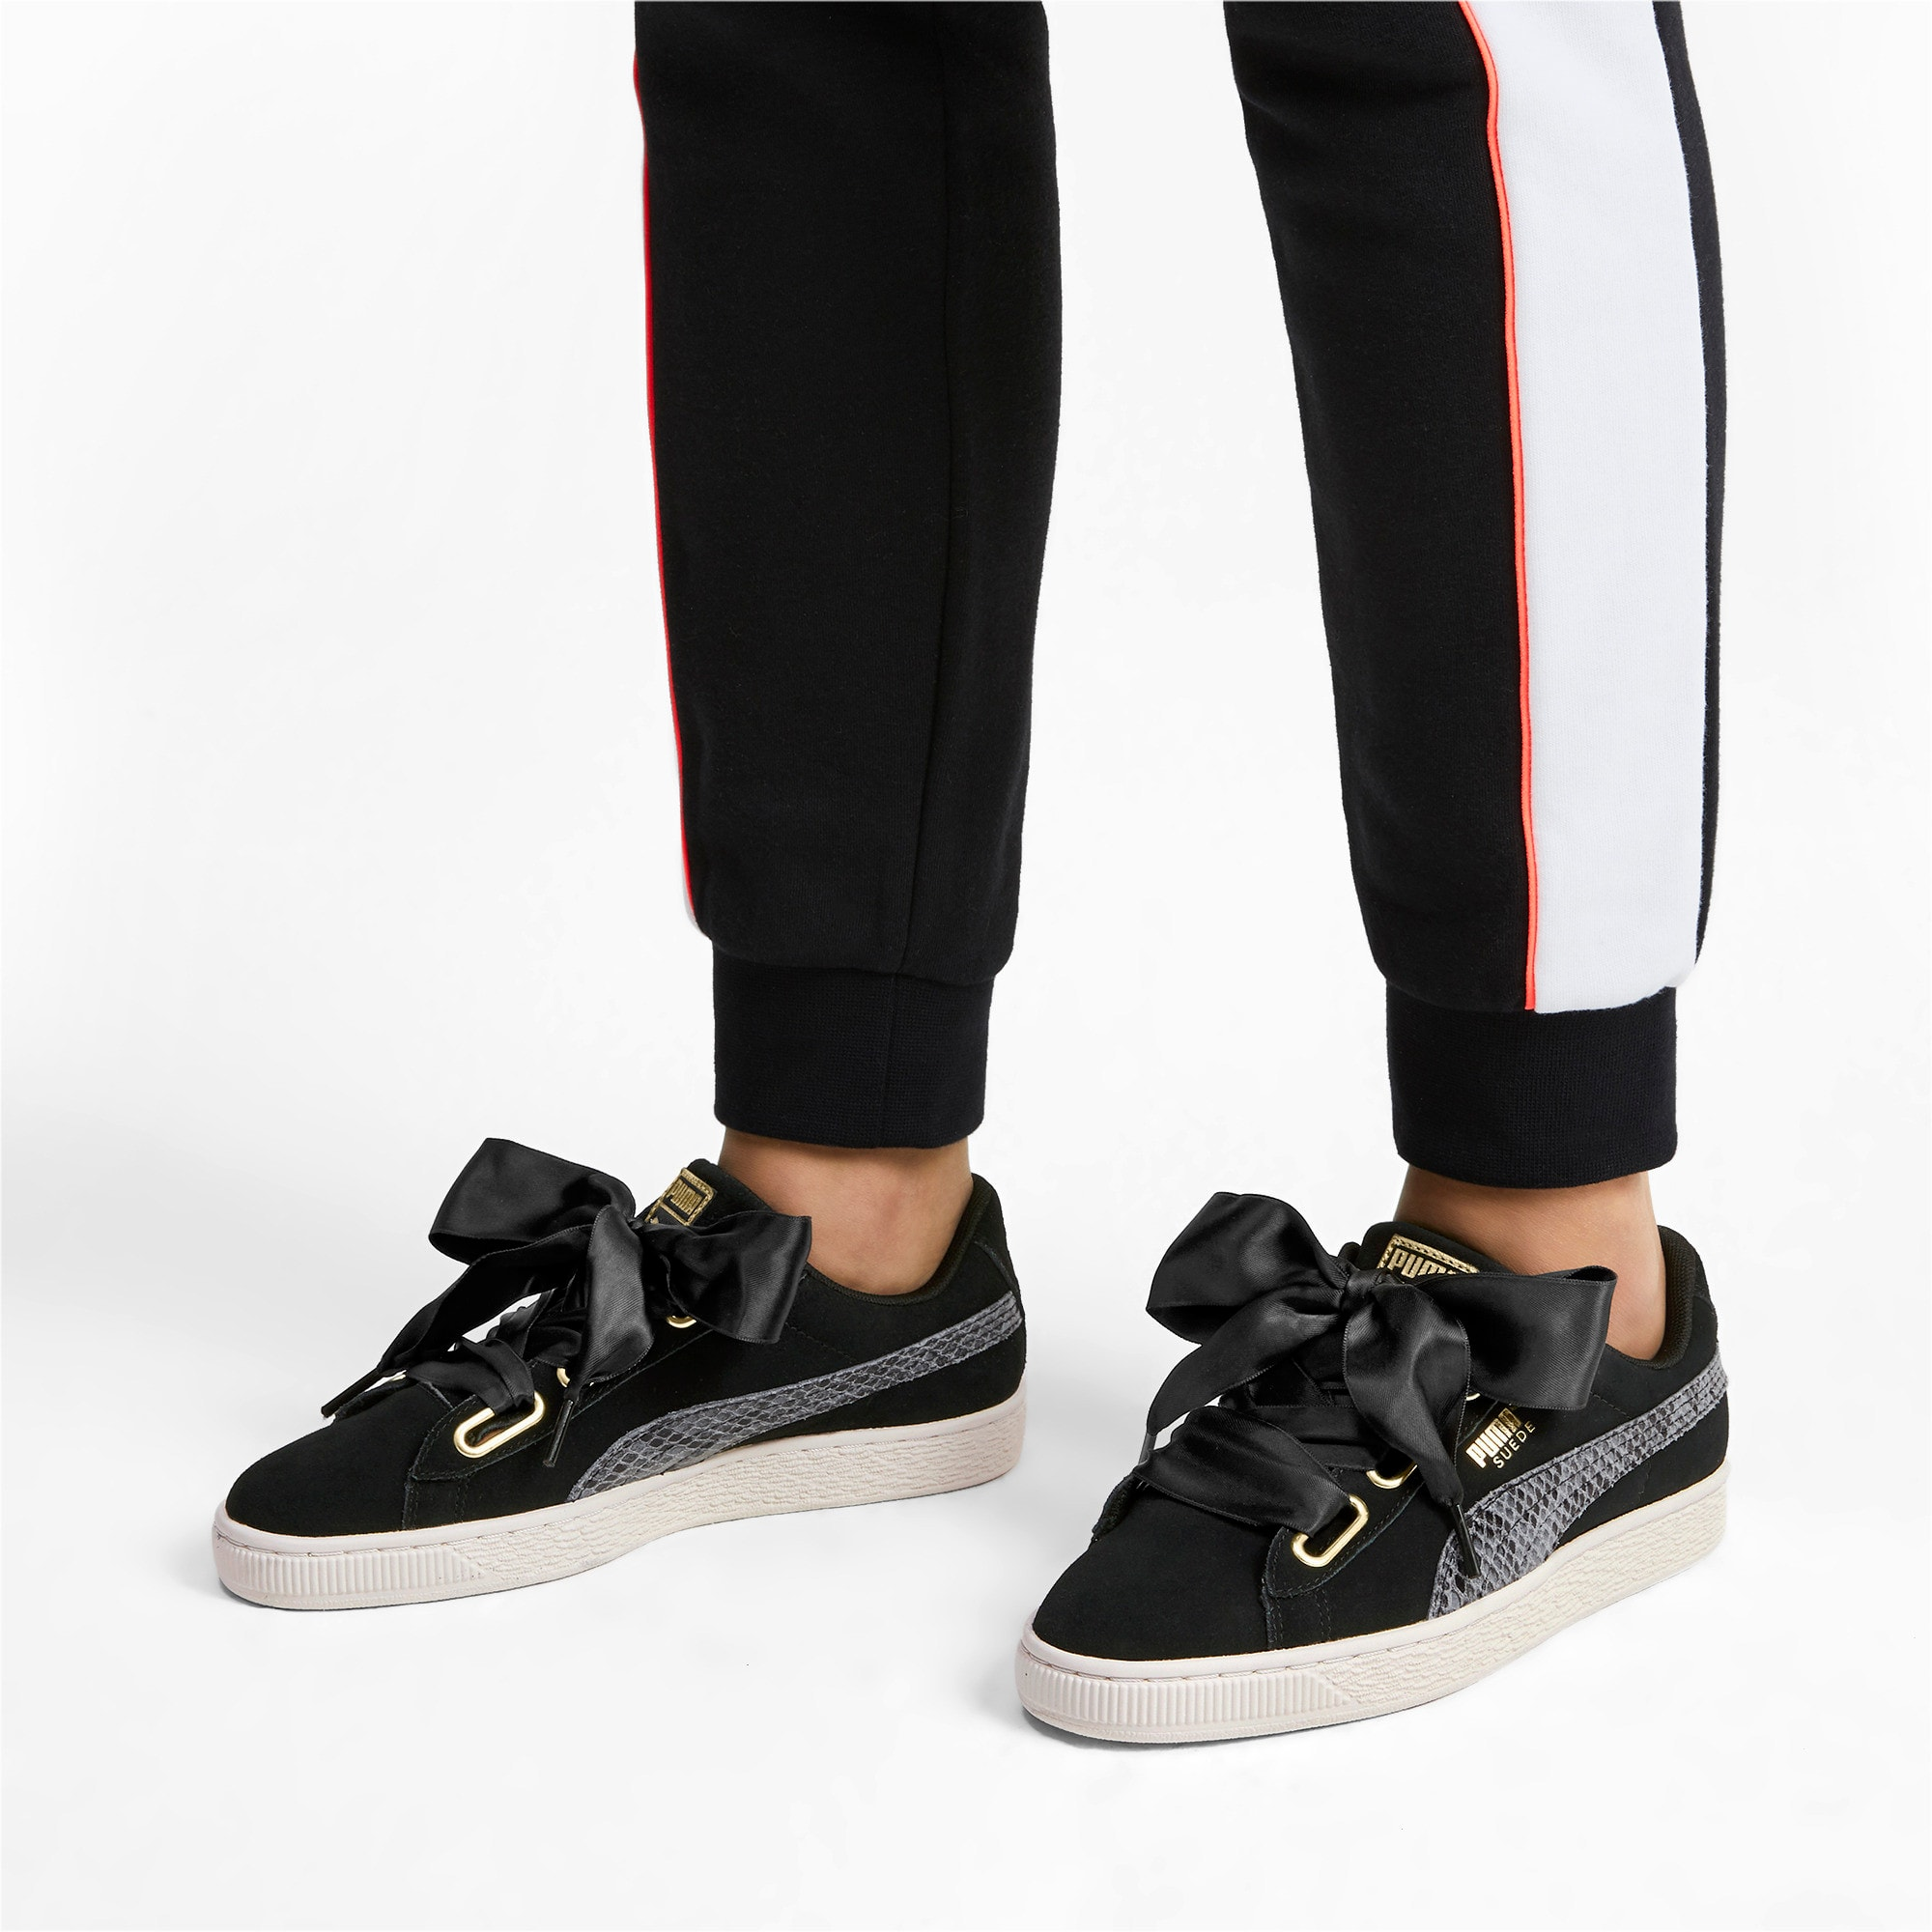 Thumbnail 3 of Suede Heart Snake Lux Women's Trainers, Puma Black-Puma Team Gold, medium-IND